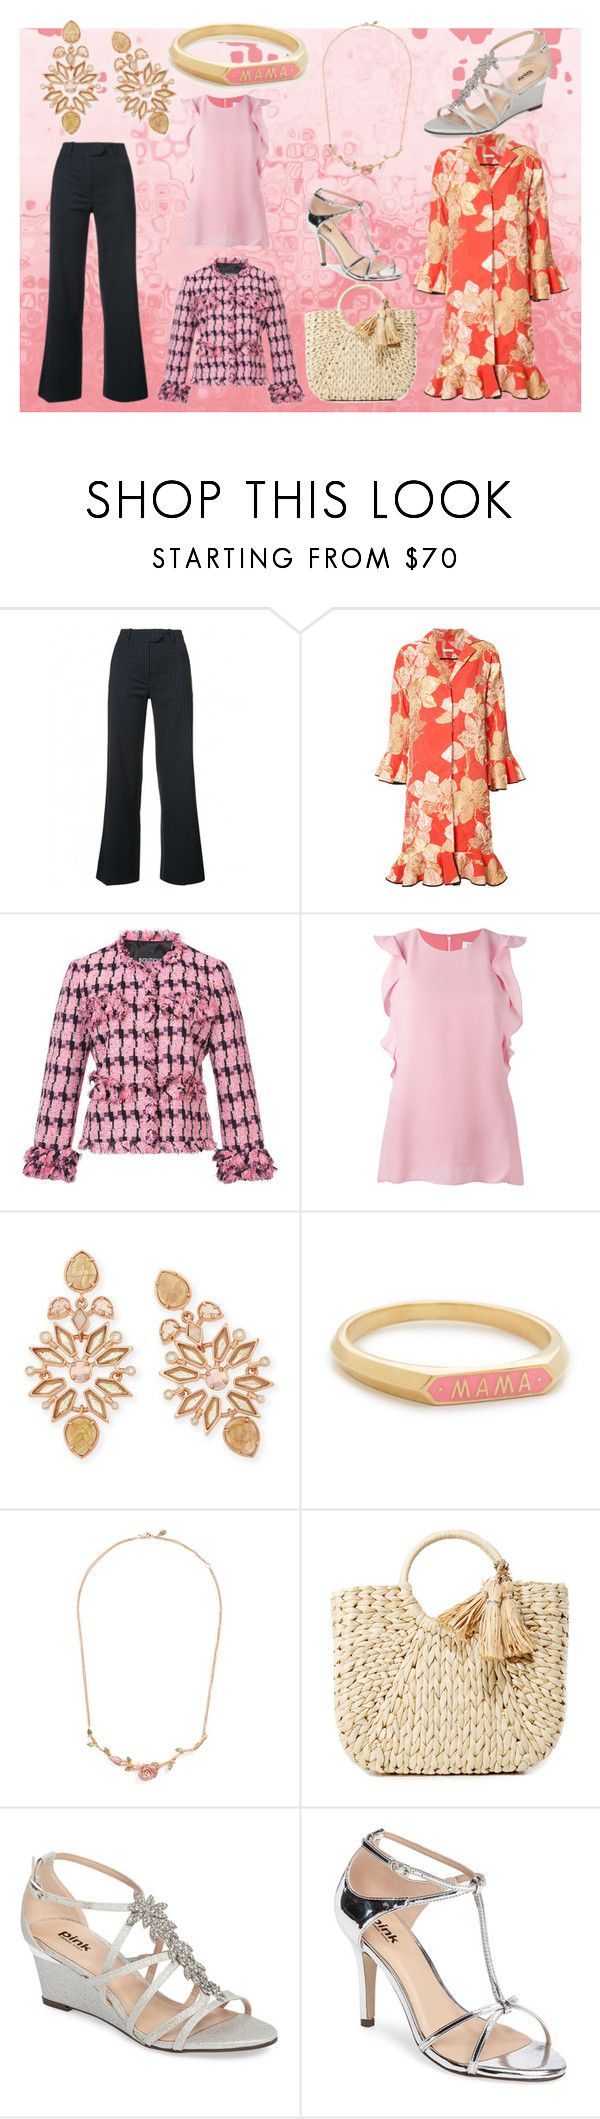 """""""Pink Matches"""" by justinallison ❤ liked on Polyvore featuring Mira Mikati, Tome, Boutique Moschino, Carven, Kendra Scott, Nora Kogan, Anyallerie, Hat Attack and Pink Paradox London"""